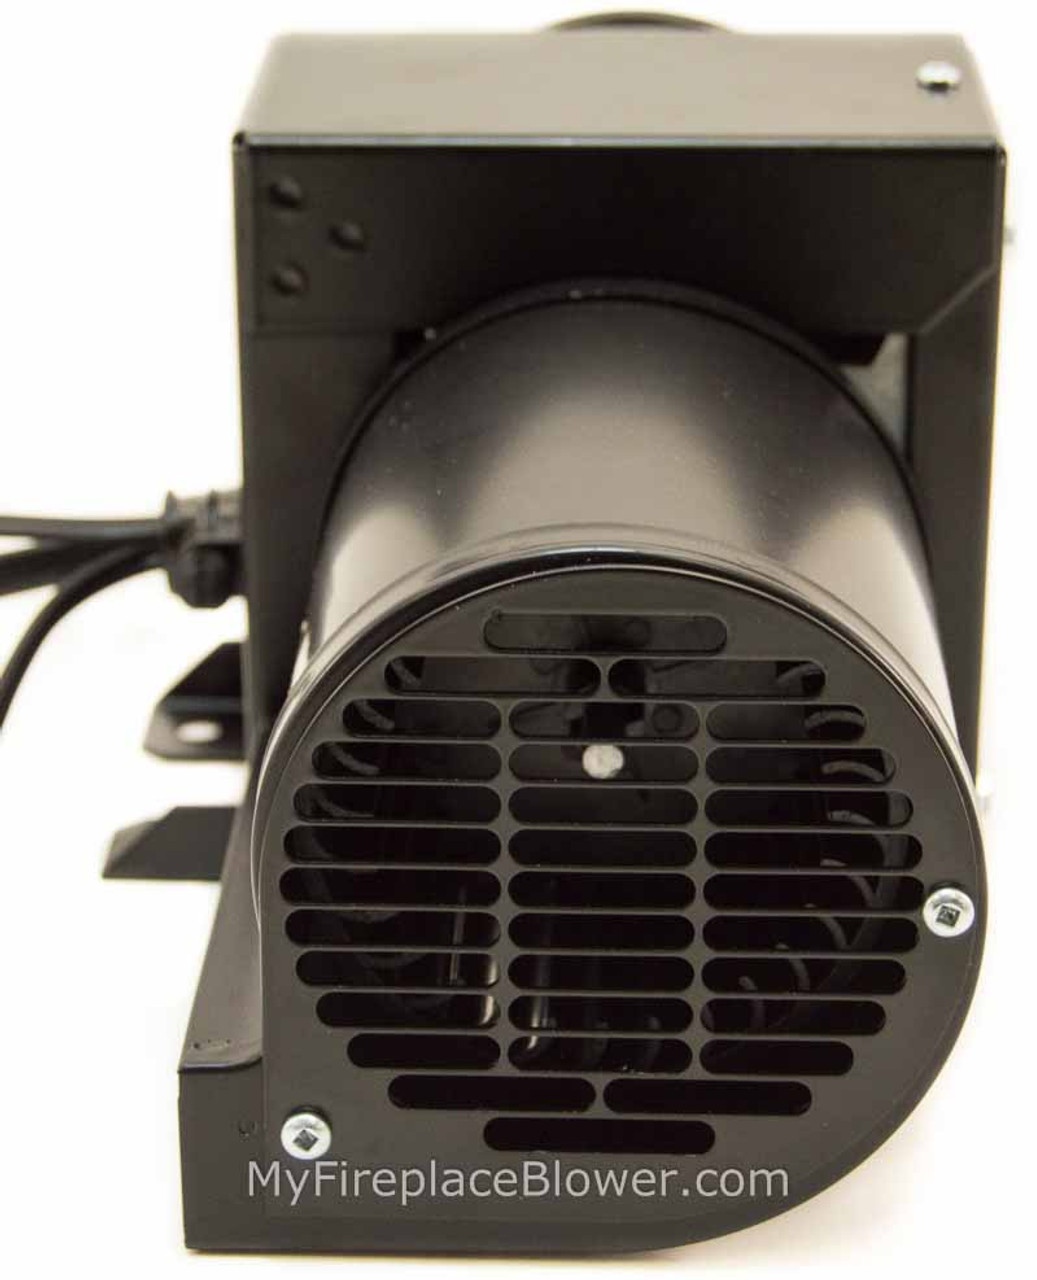 Super Fk26 Stove Blower Fan Kit For Vermont Castings Download Free Architecture Designs Licukmadebymaigaardcom